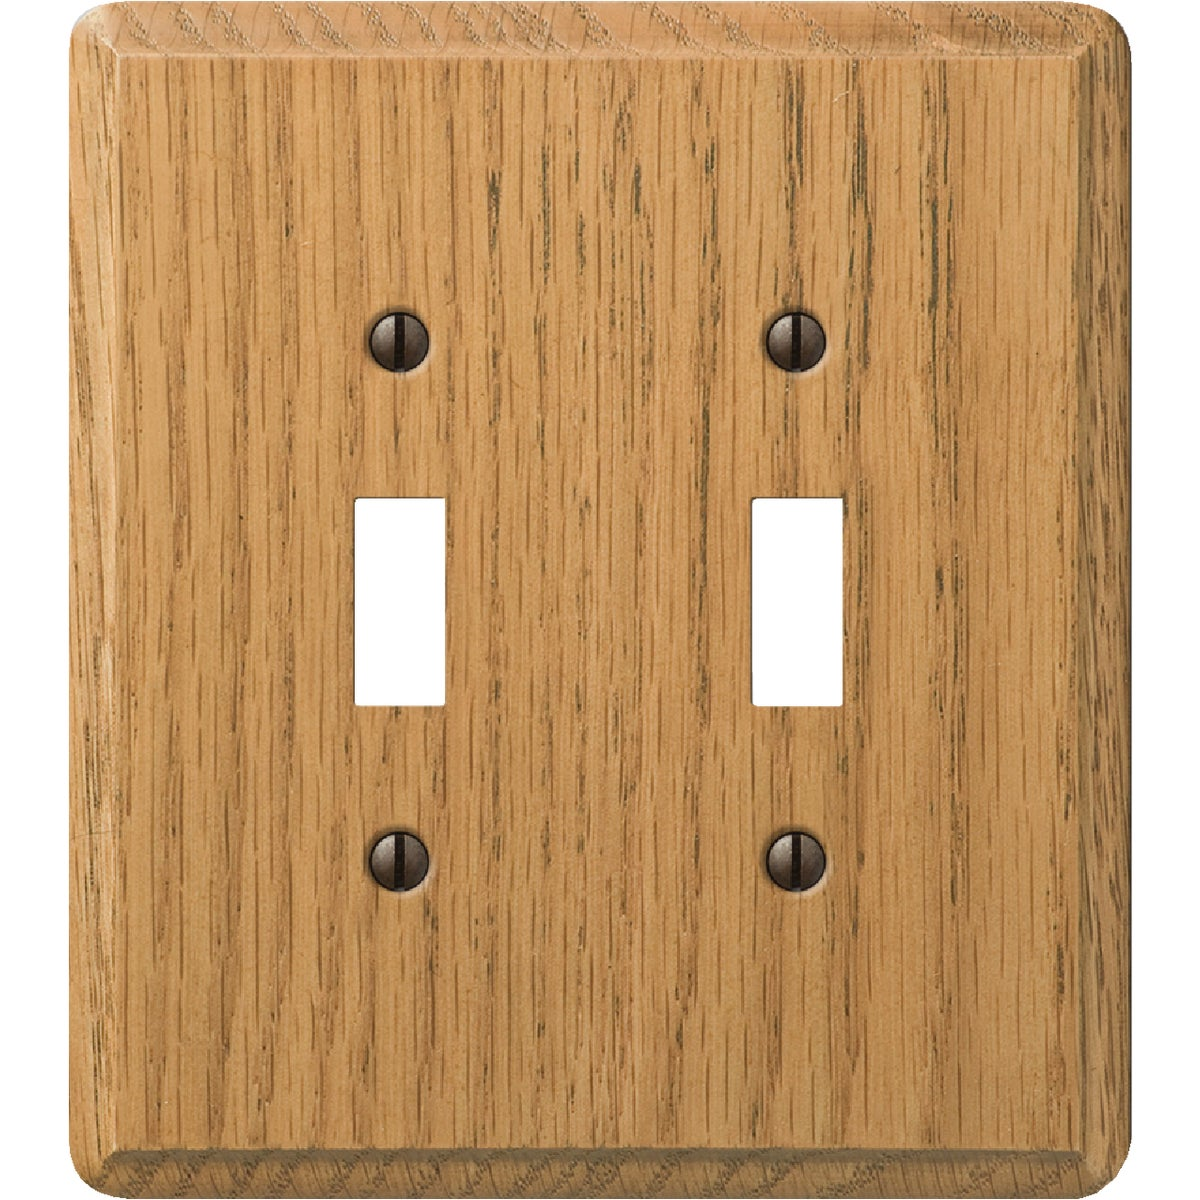 OAK 2-TOGGLE WALL PLATE - 902L by Jackson Deerfield Mf